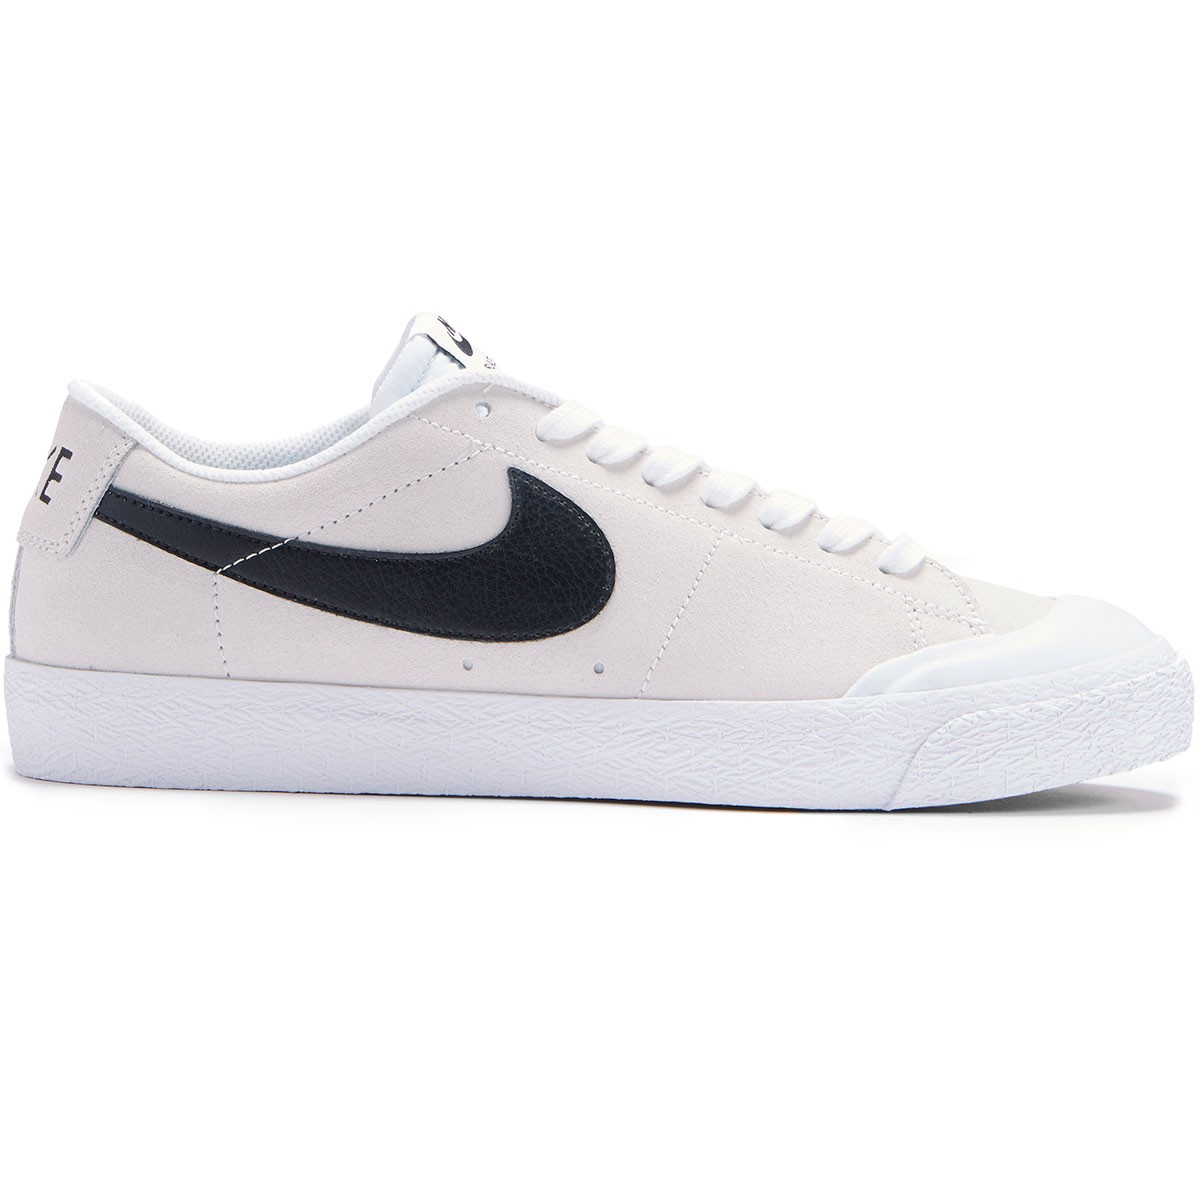 los angeles bf53c c9a8e Nike SB Air Zoom Blazer Low XT Shoes